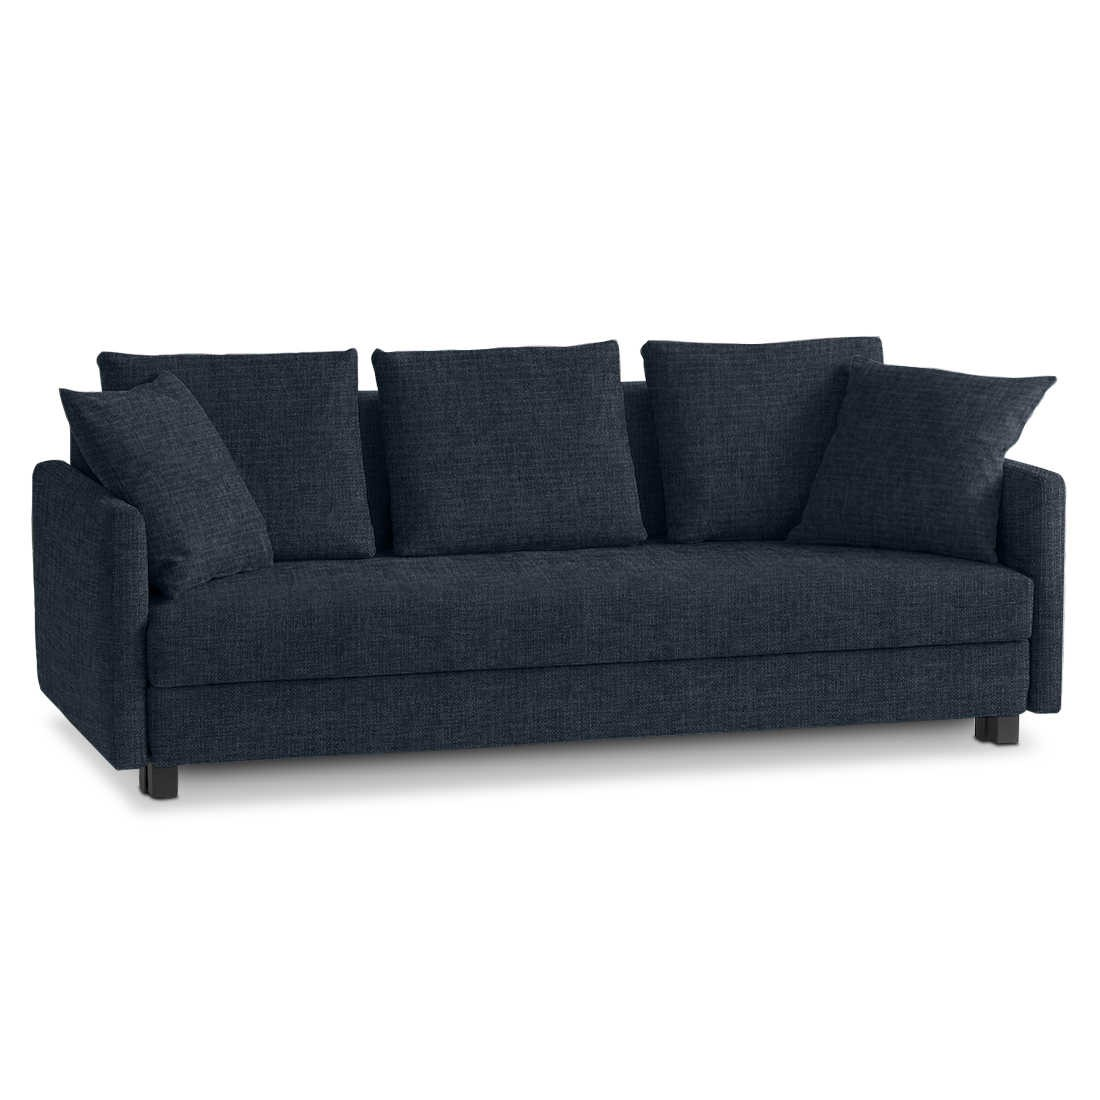 franz fertig schlafsofa jester blau stoff online kaufen bei woonio. Black Bedroom Furniture Sets. Home Design Ideas